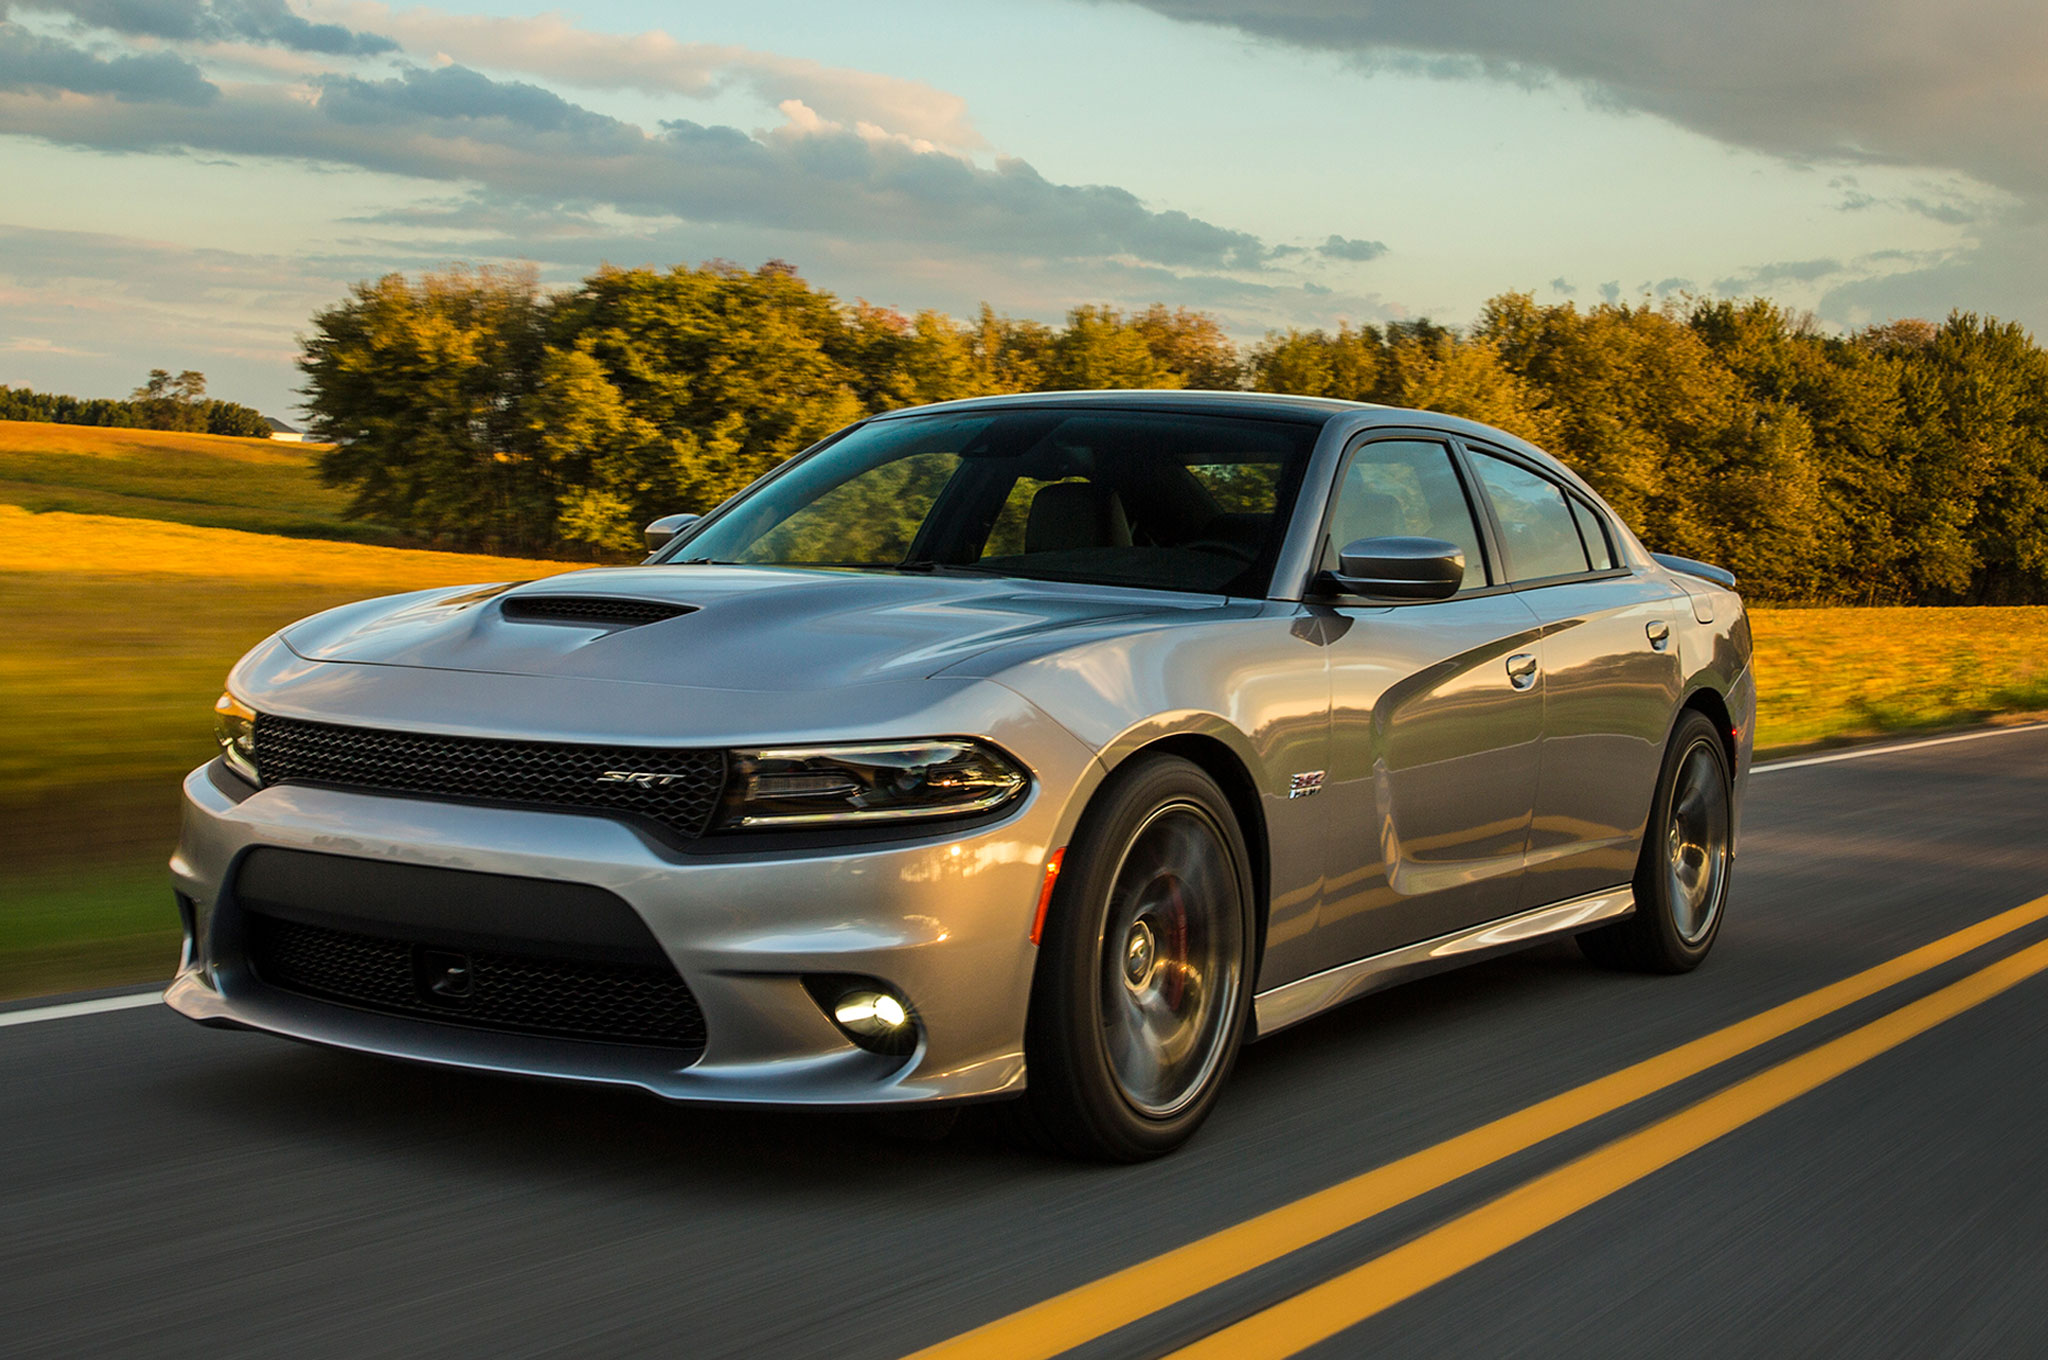 dodge srt used sale cars charger superbee for